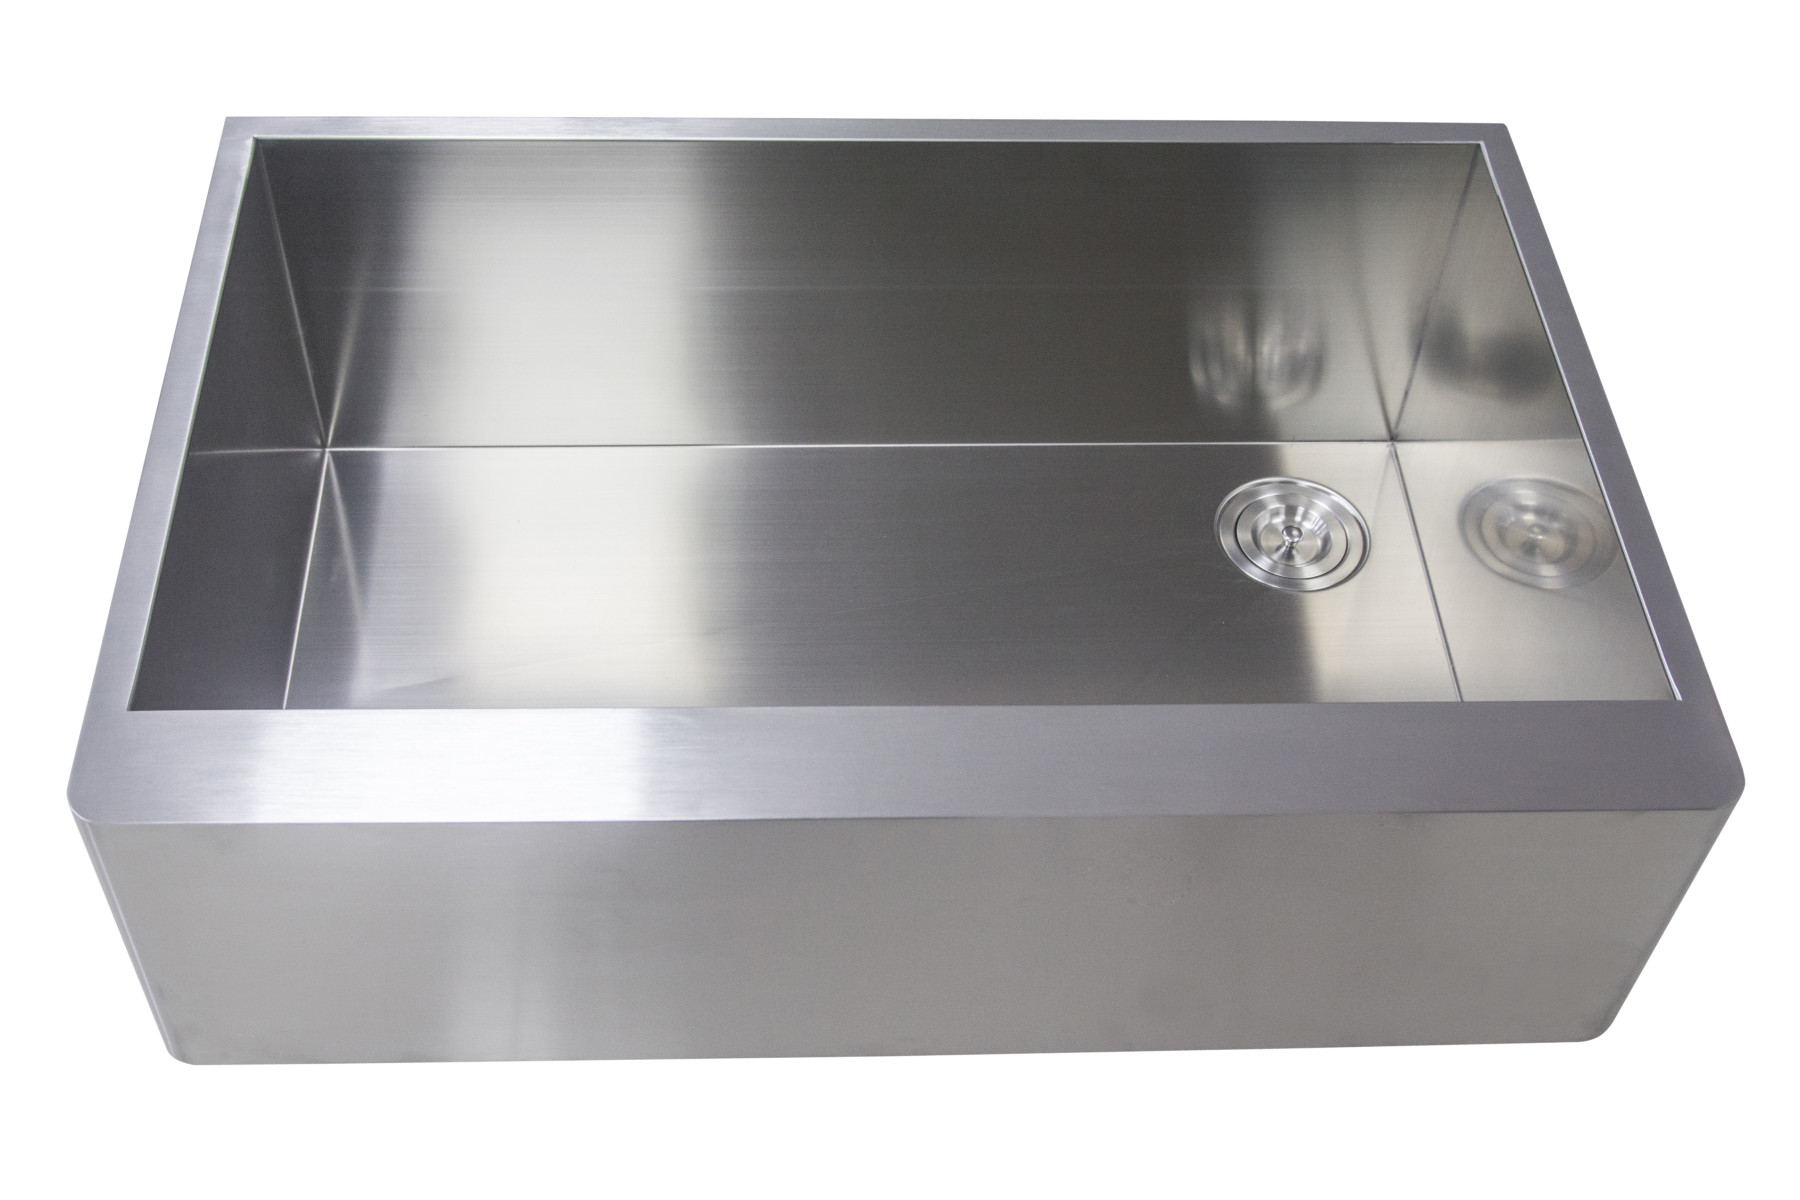 Bathroom sink cabinet dimensions - As389 36 Quot X 24 Quot X 14 Quot 16g Handcrafted Stainless Steel Dog